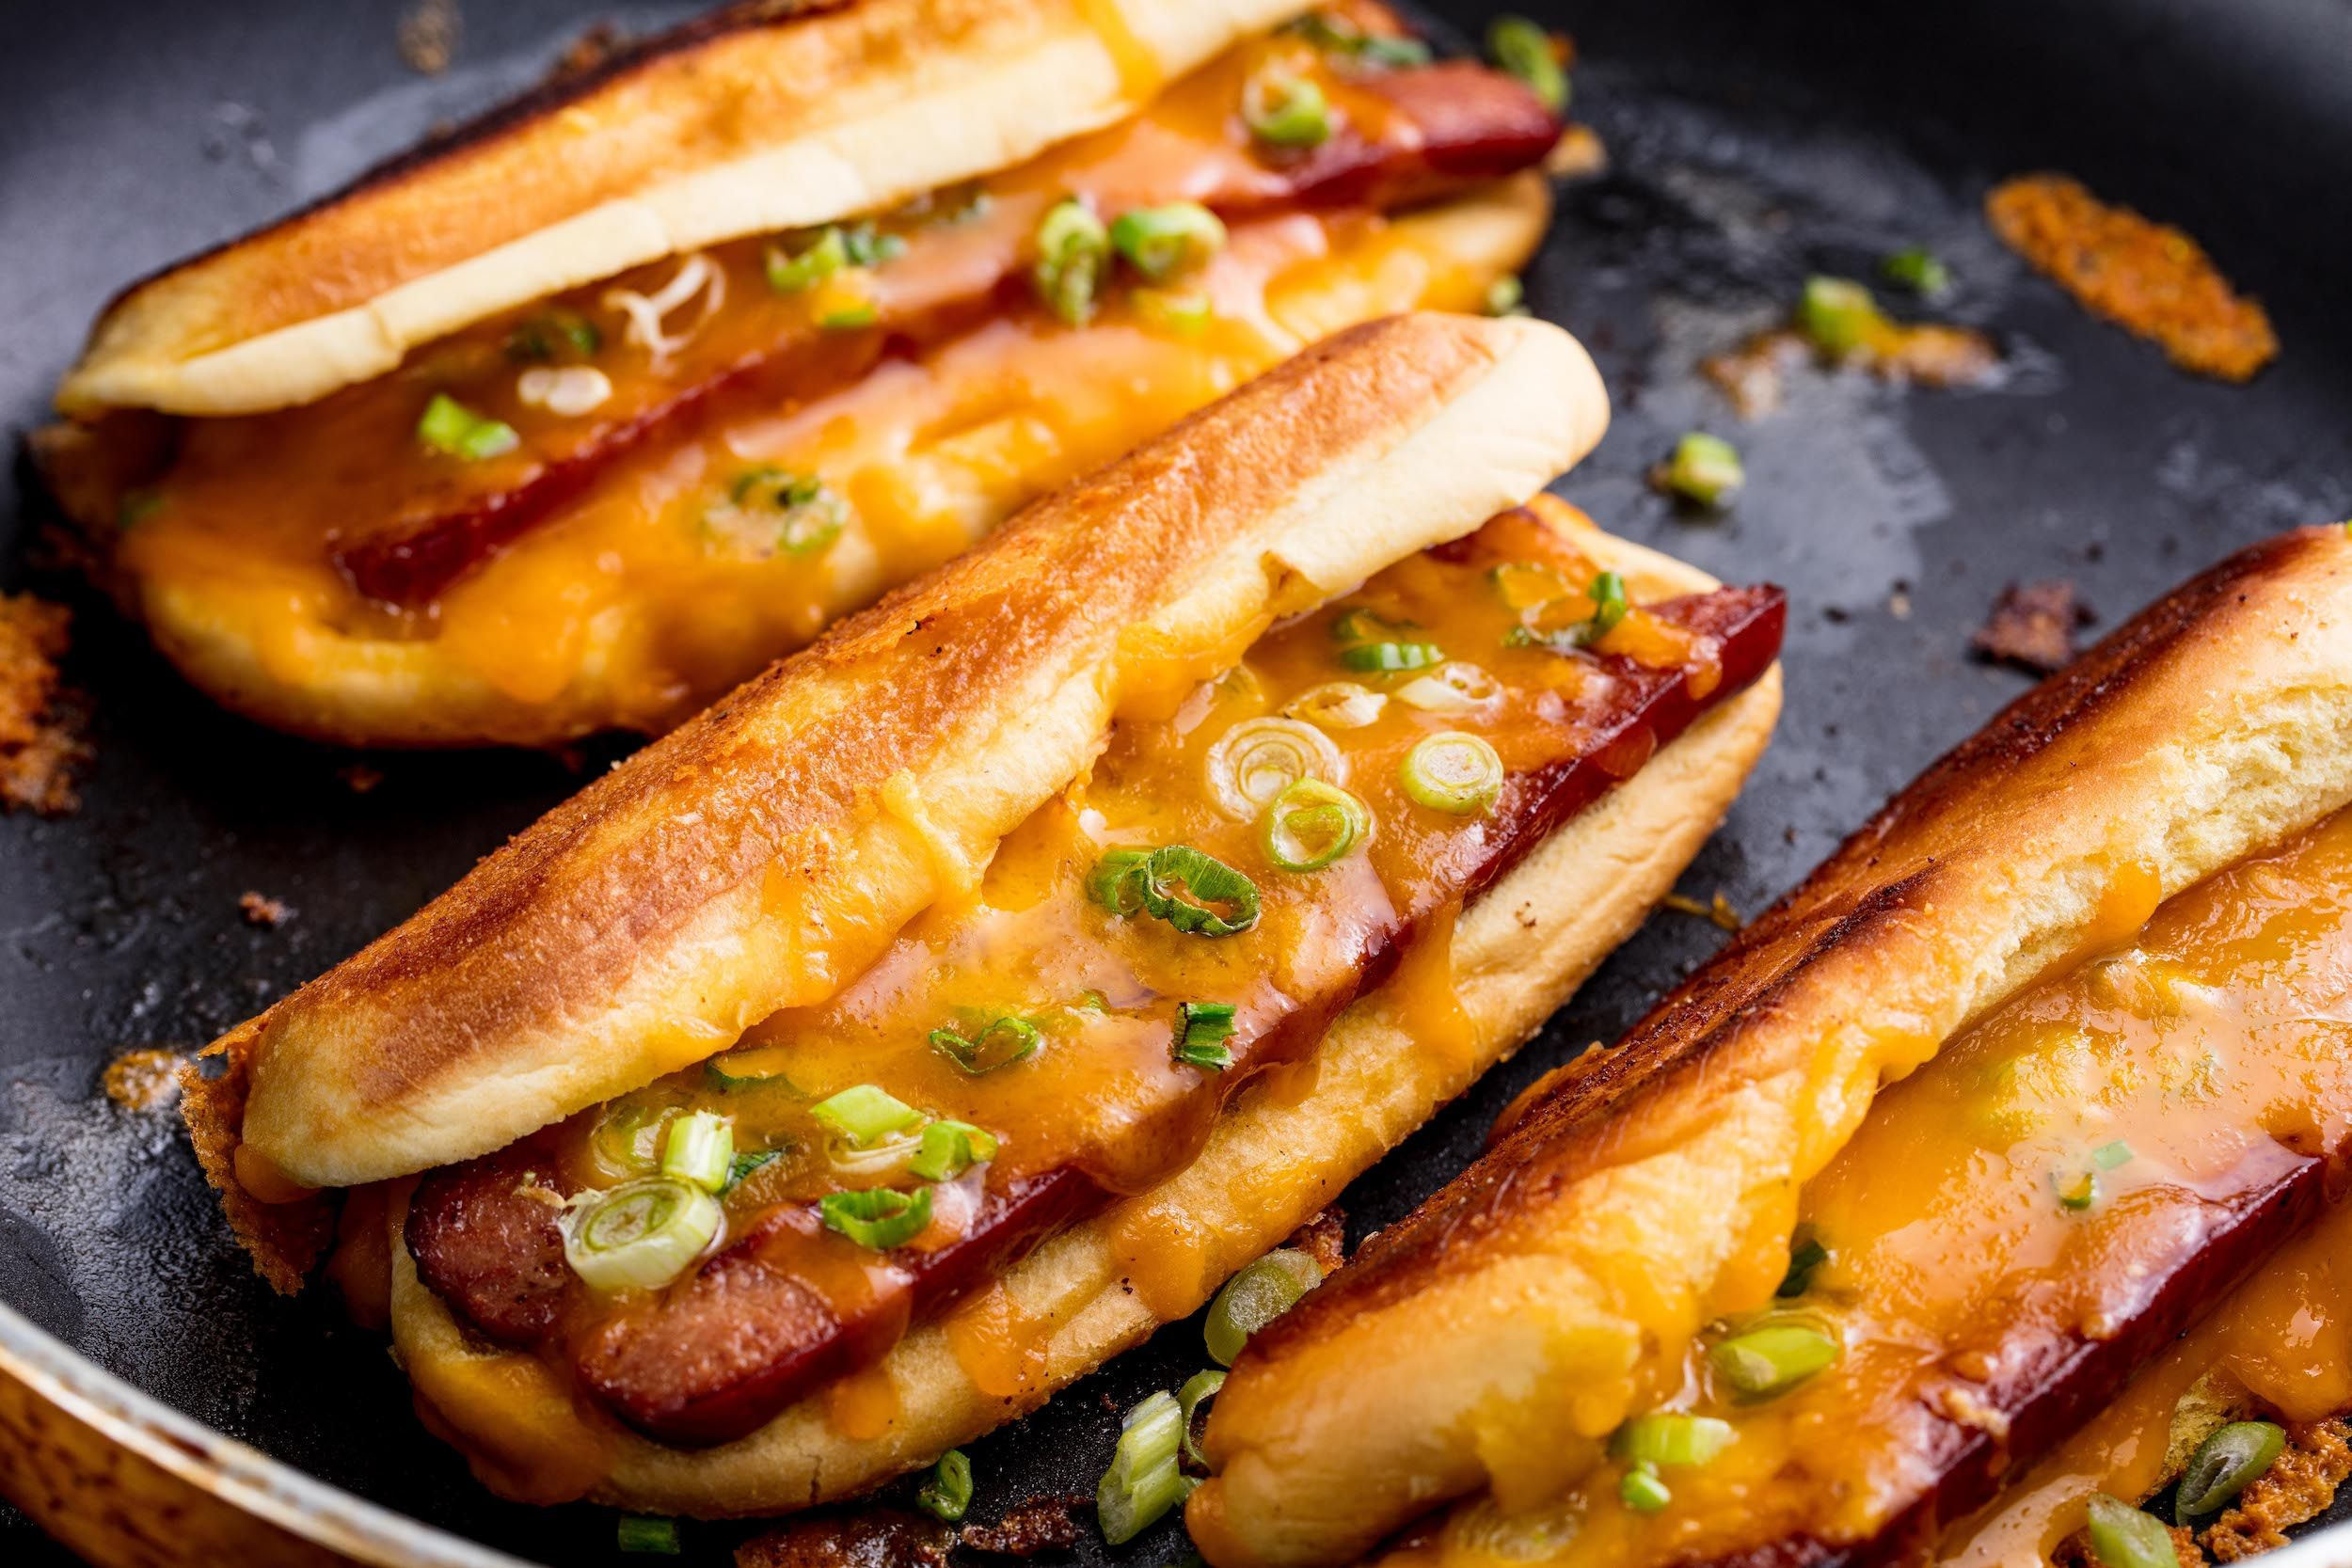 Hot Dog Shoyu Sauce Recipe